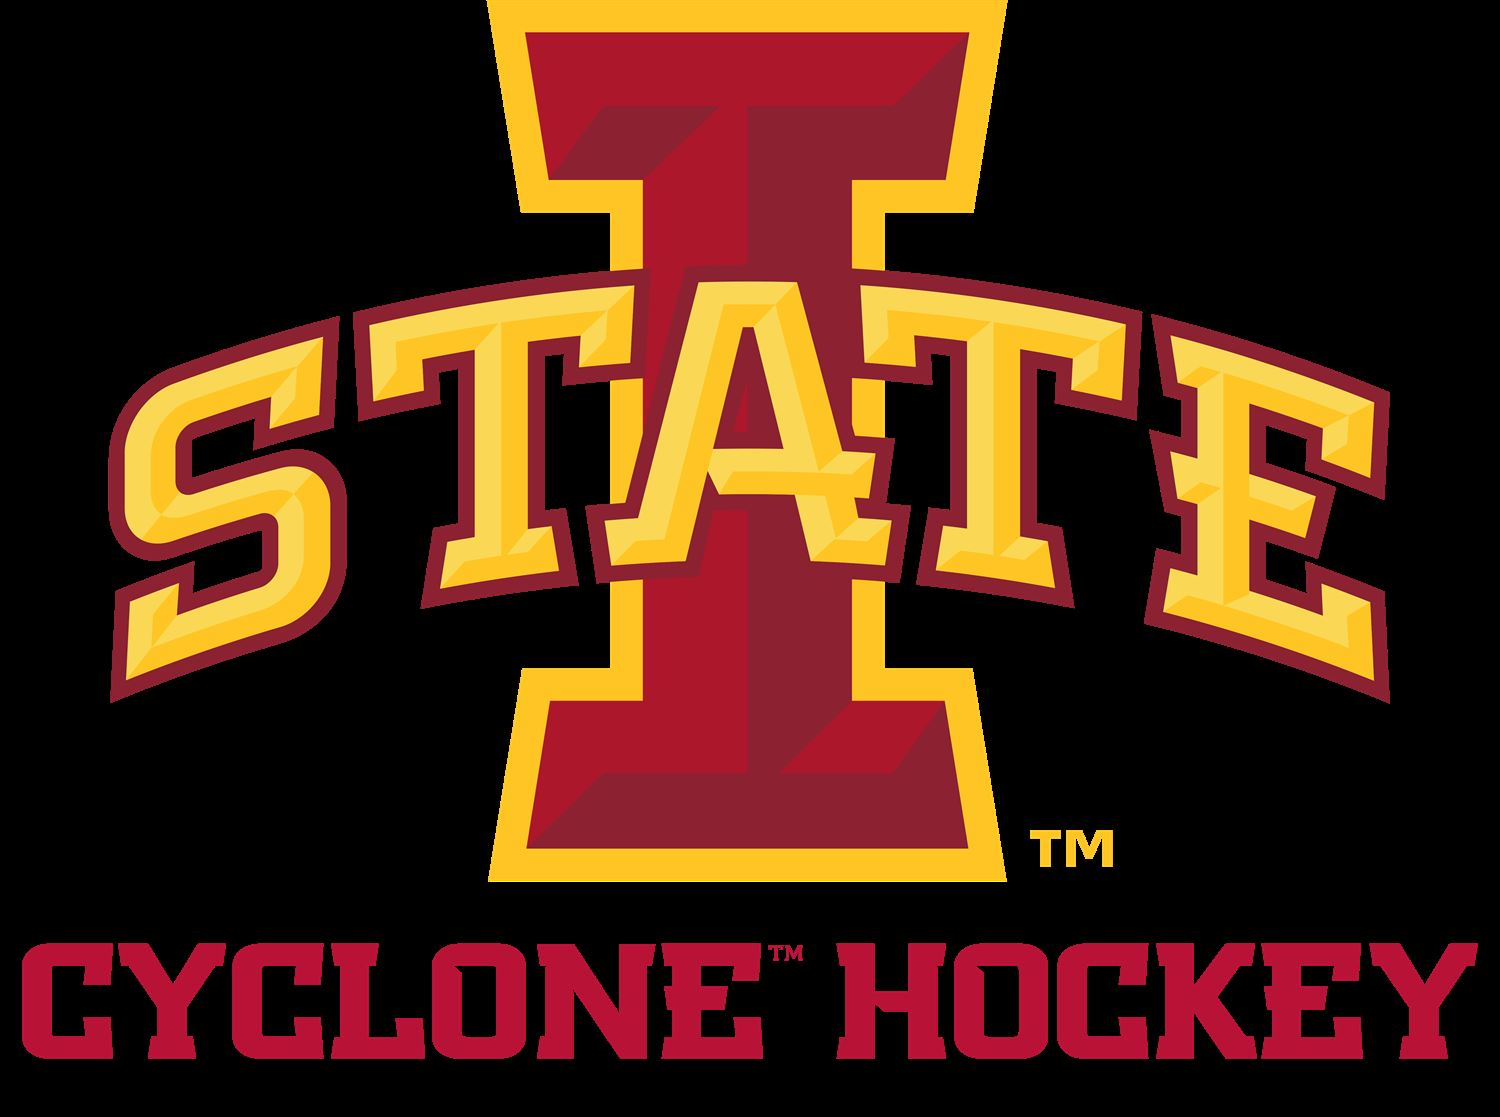 Iowa State University - D2 Cyclone Hockey